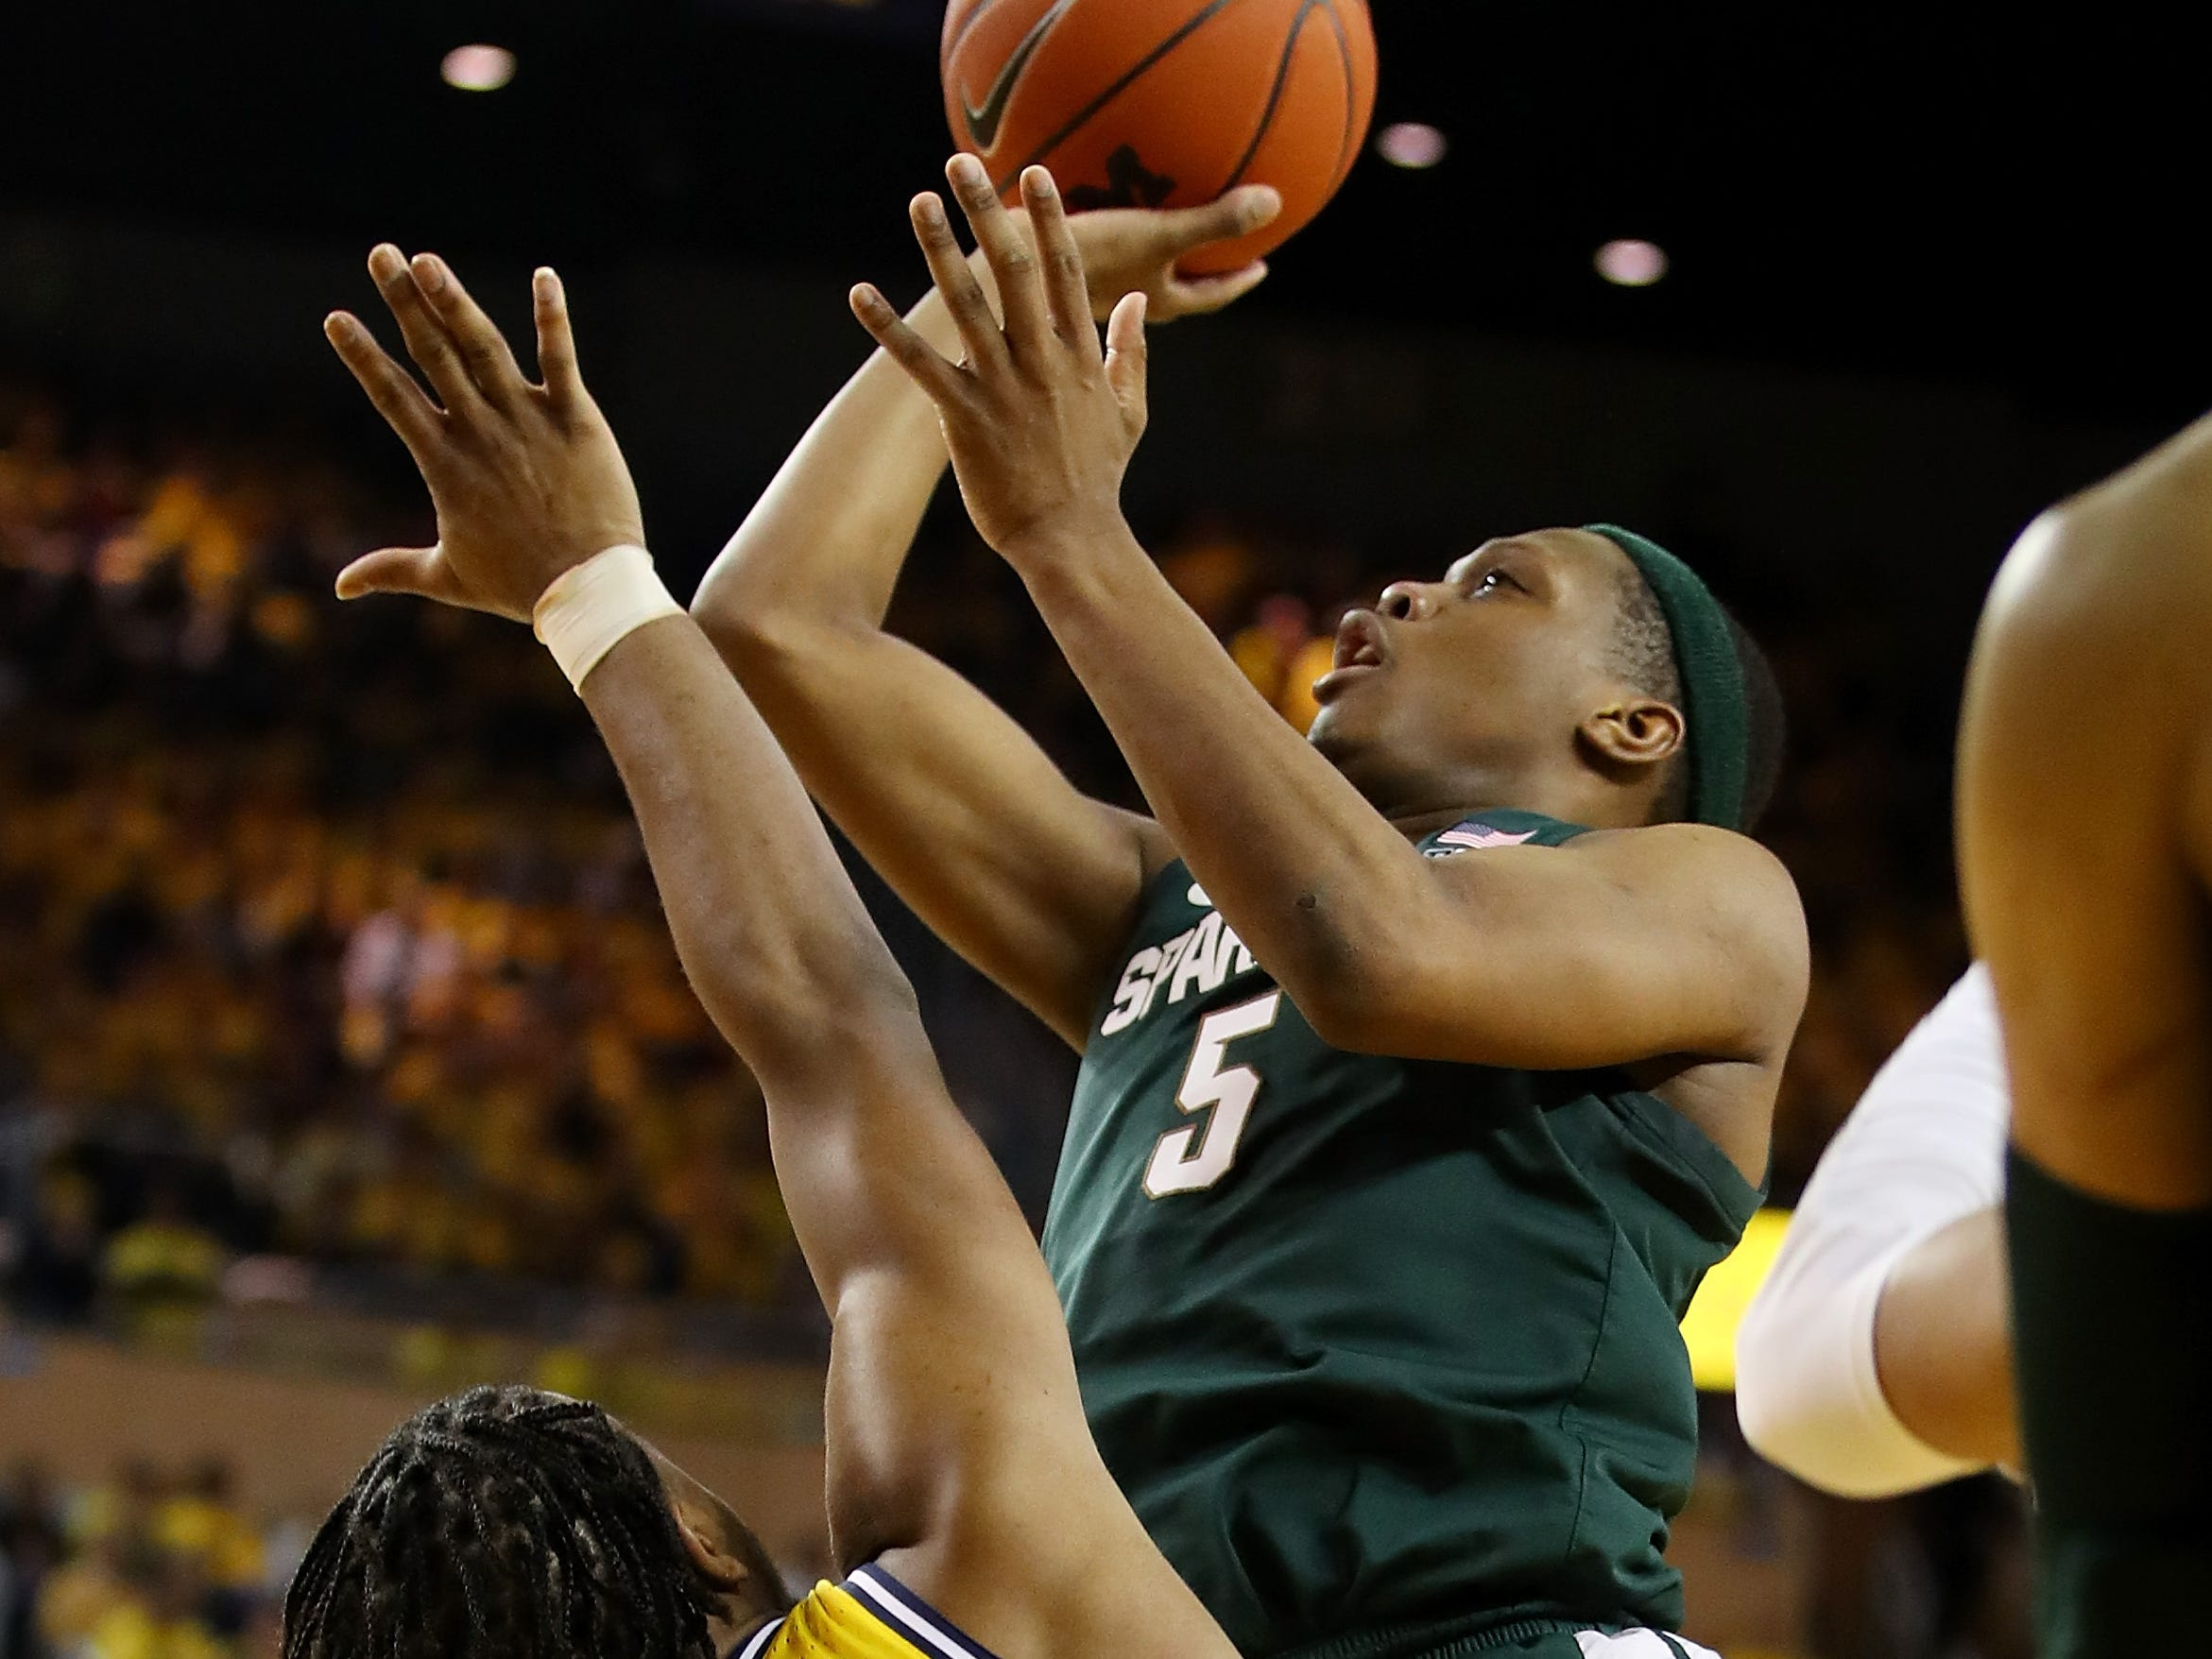 Cassius Winston #5 of the Michigan State Spartans takes a shot over Zavier Simpson #3 of the Michigan Wolverines during the second half at Crisler Arena on February 24, 2019 in Ann Arbor, Michigan. Michigan State won the game 77-70.